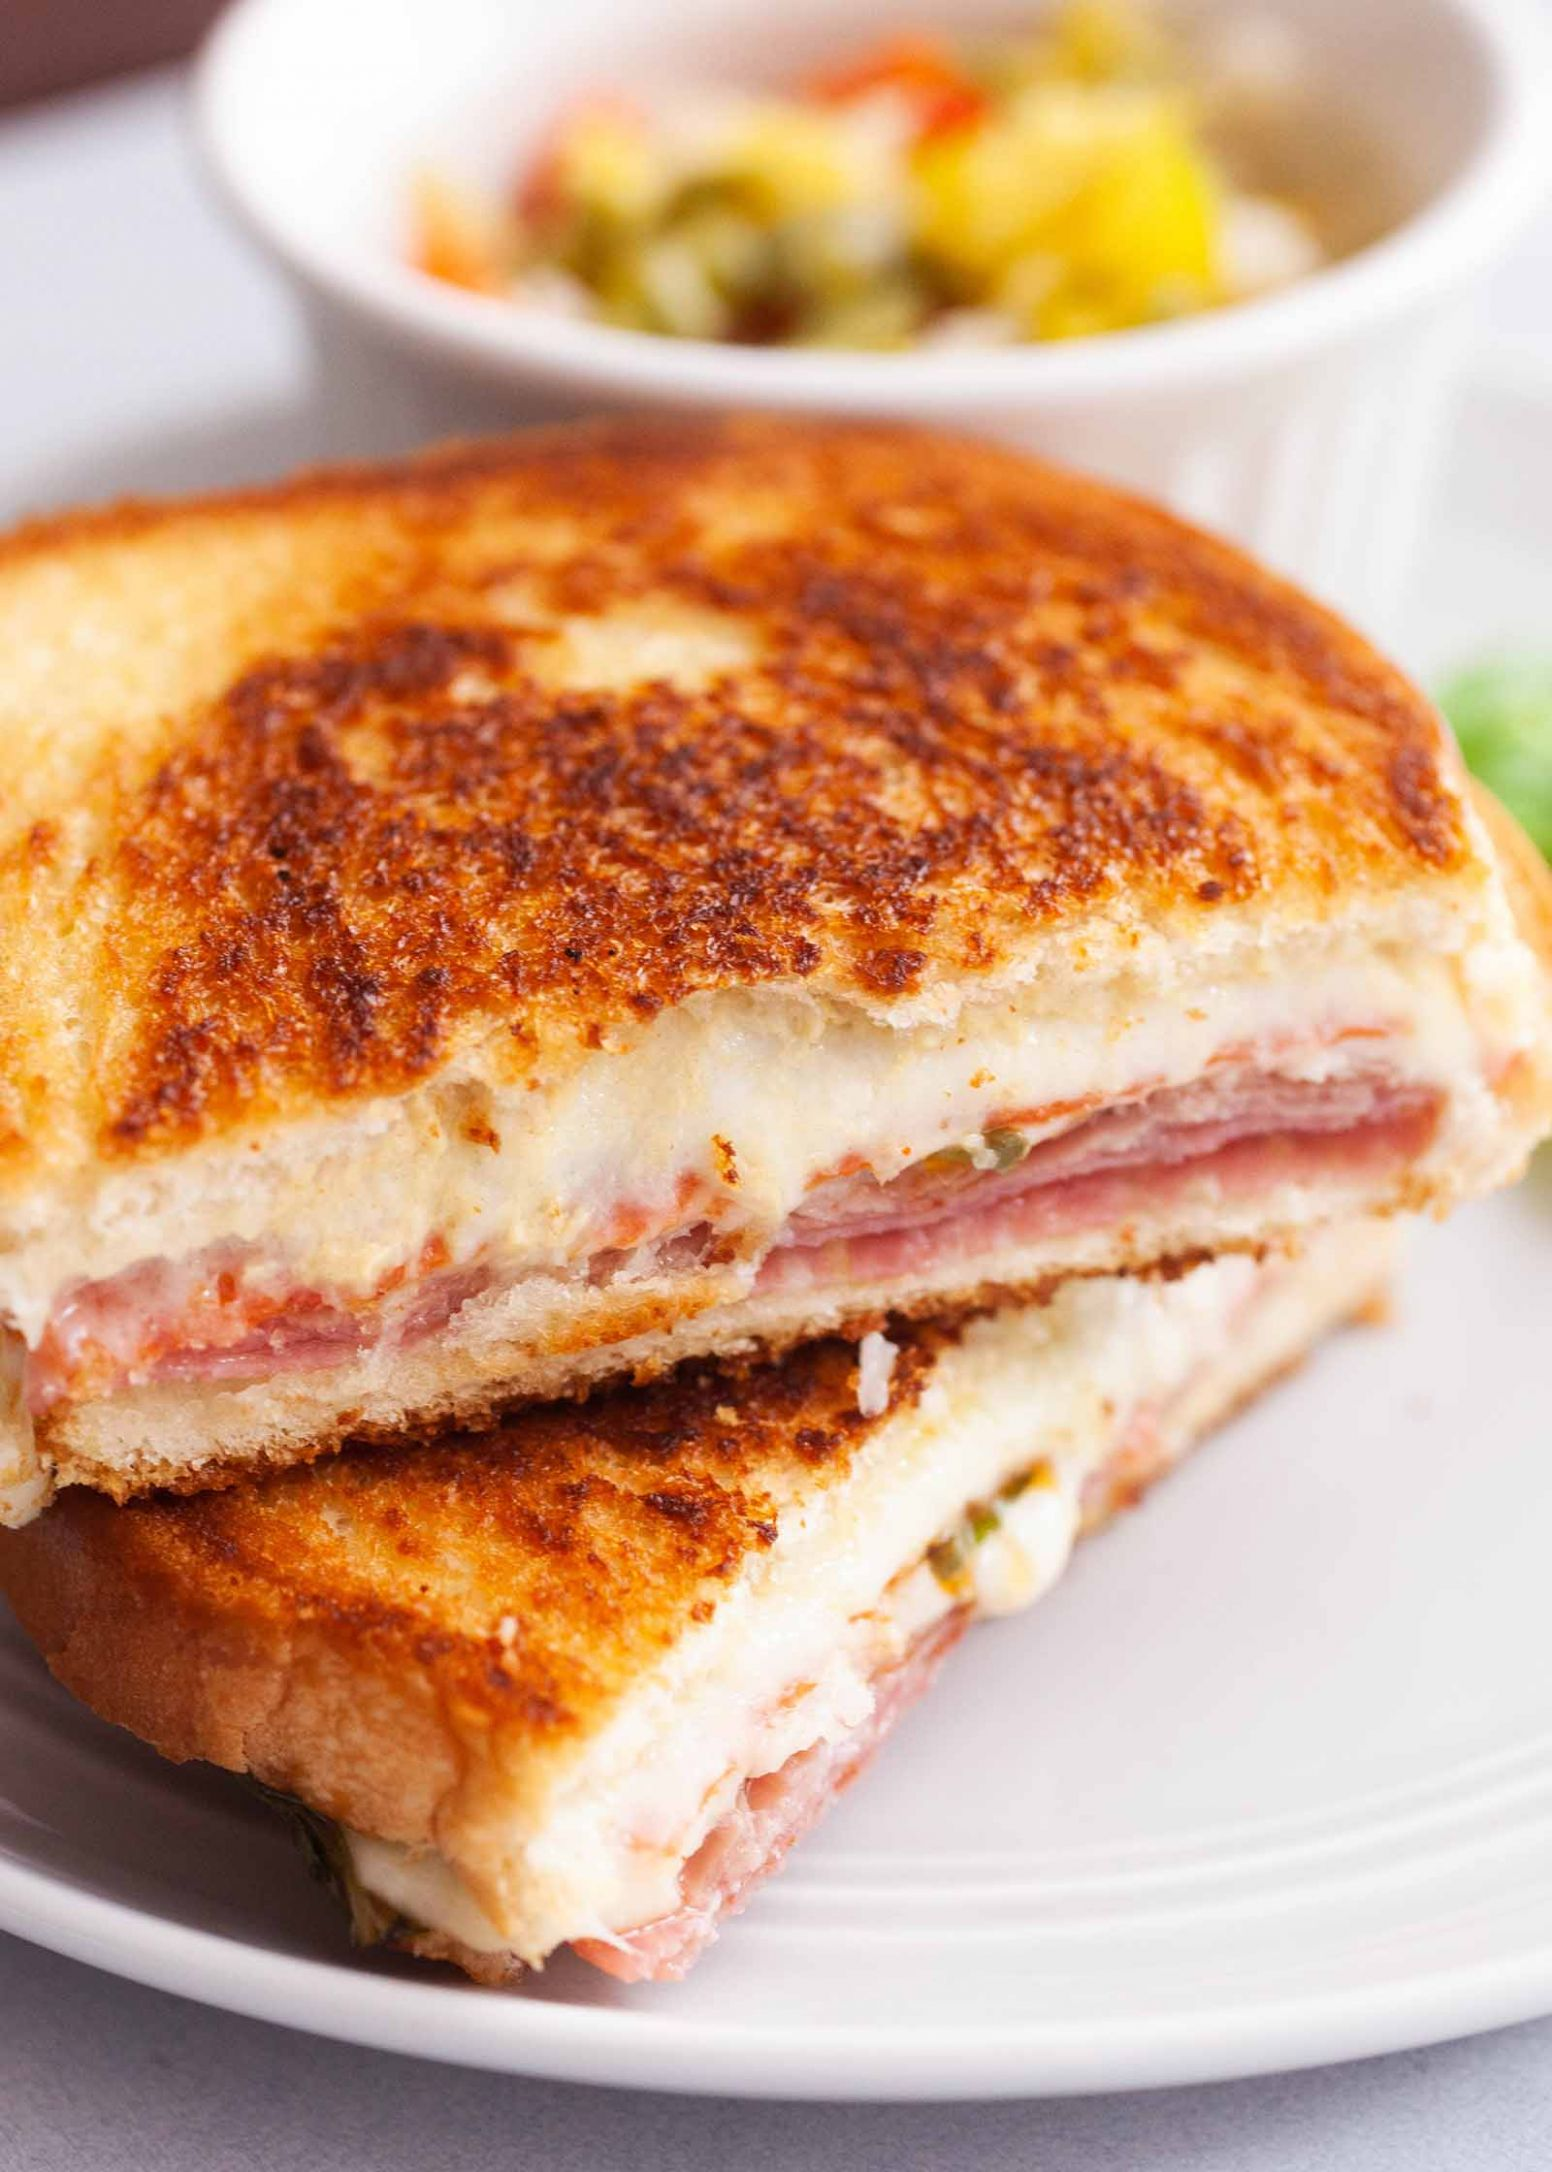 Italian Grilled Cheese Sandwiches - Sandwich Recipes To Go